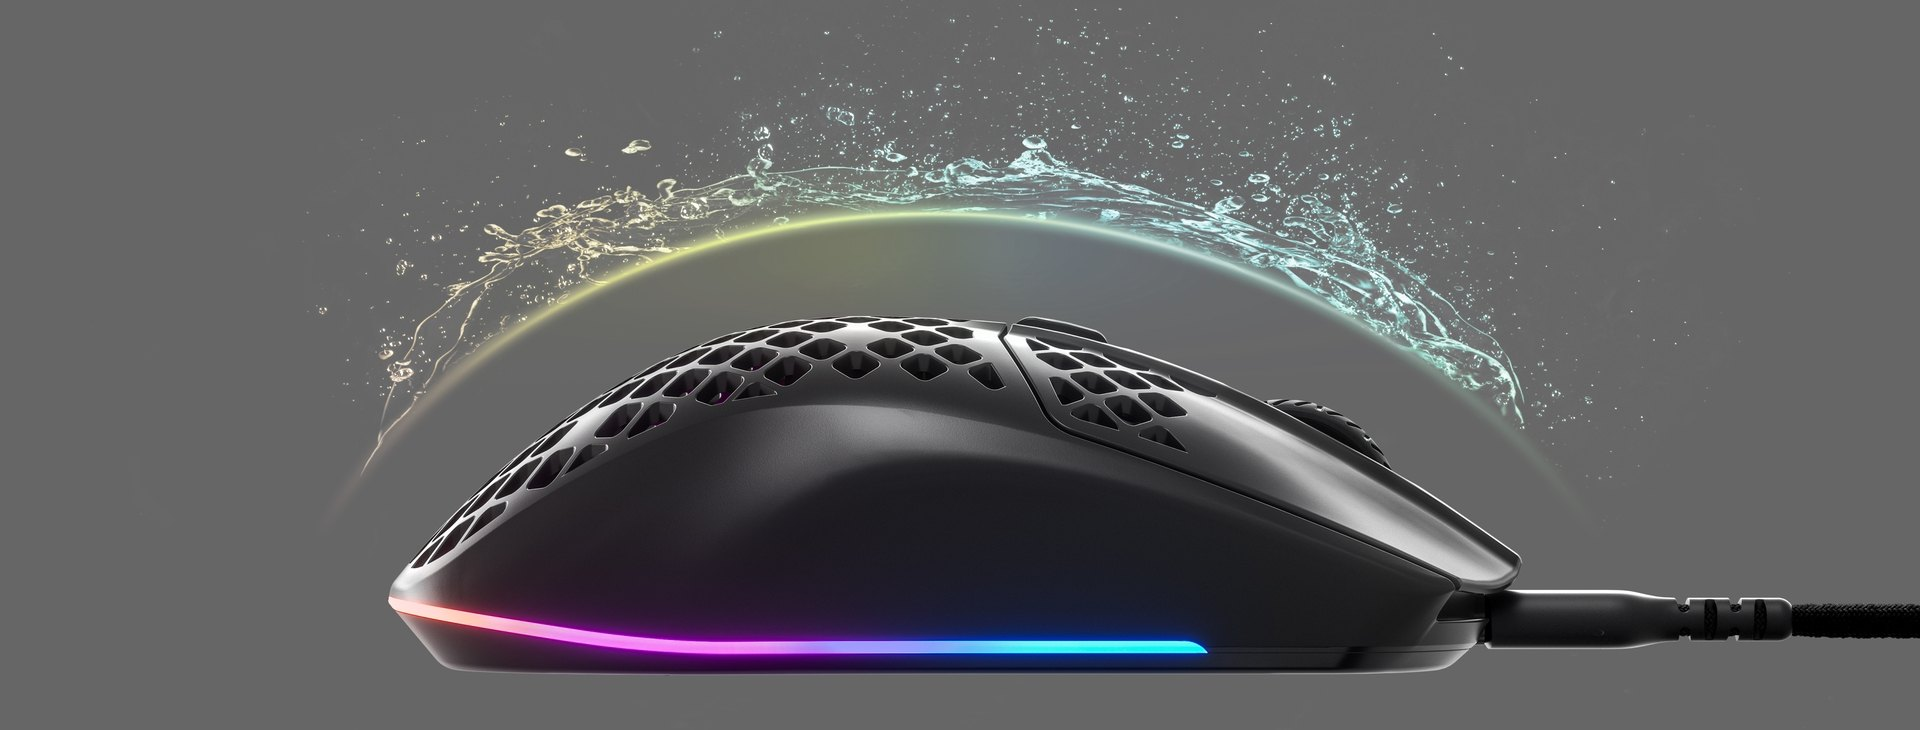 An Aerox 3 mouse with an invisible shield protecting it from incoming water splashing, to convey the waterproofing features